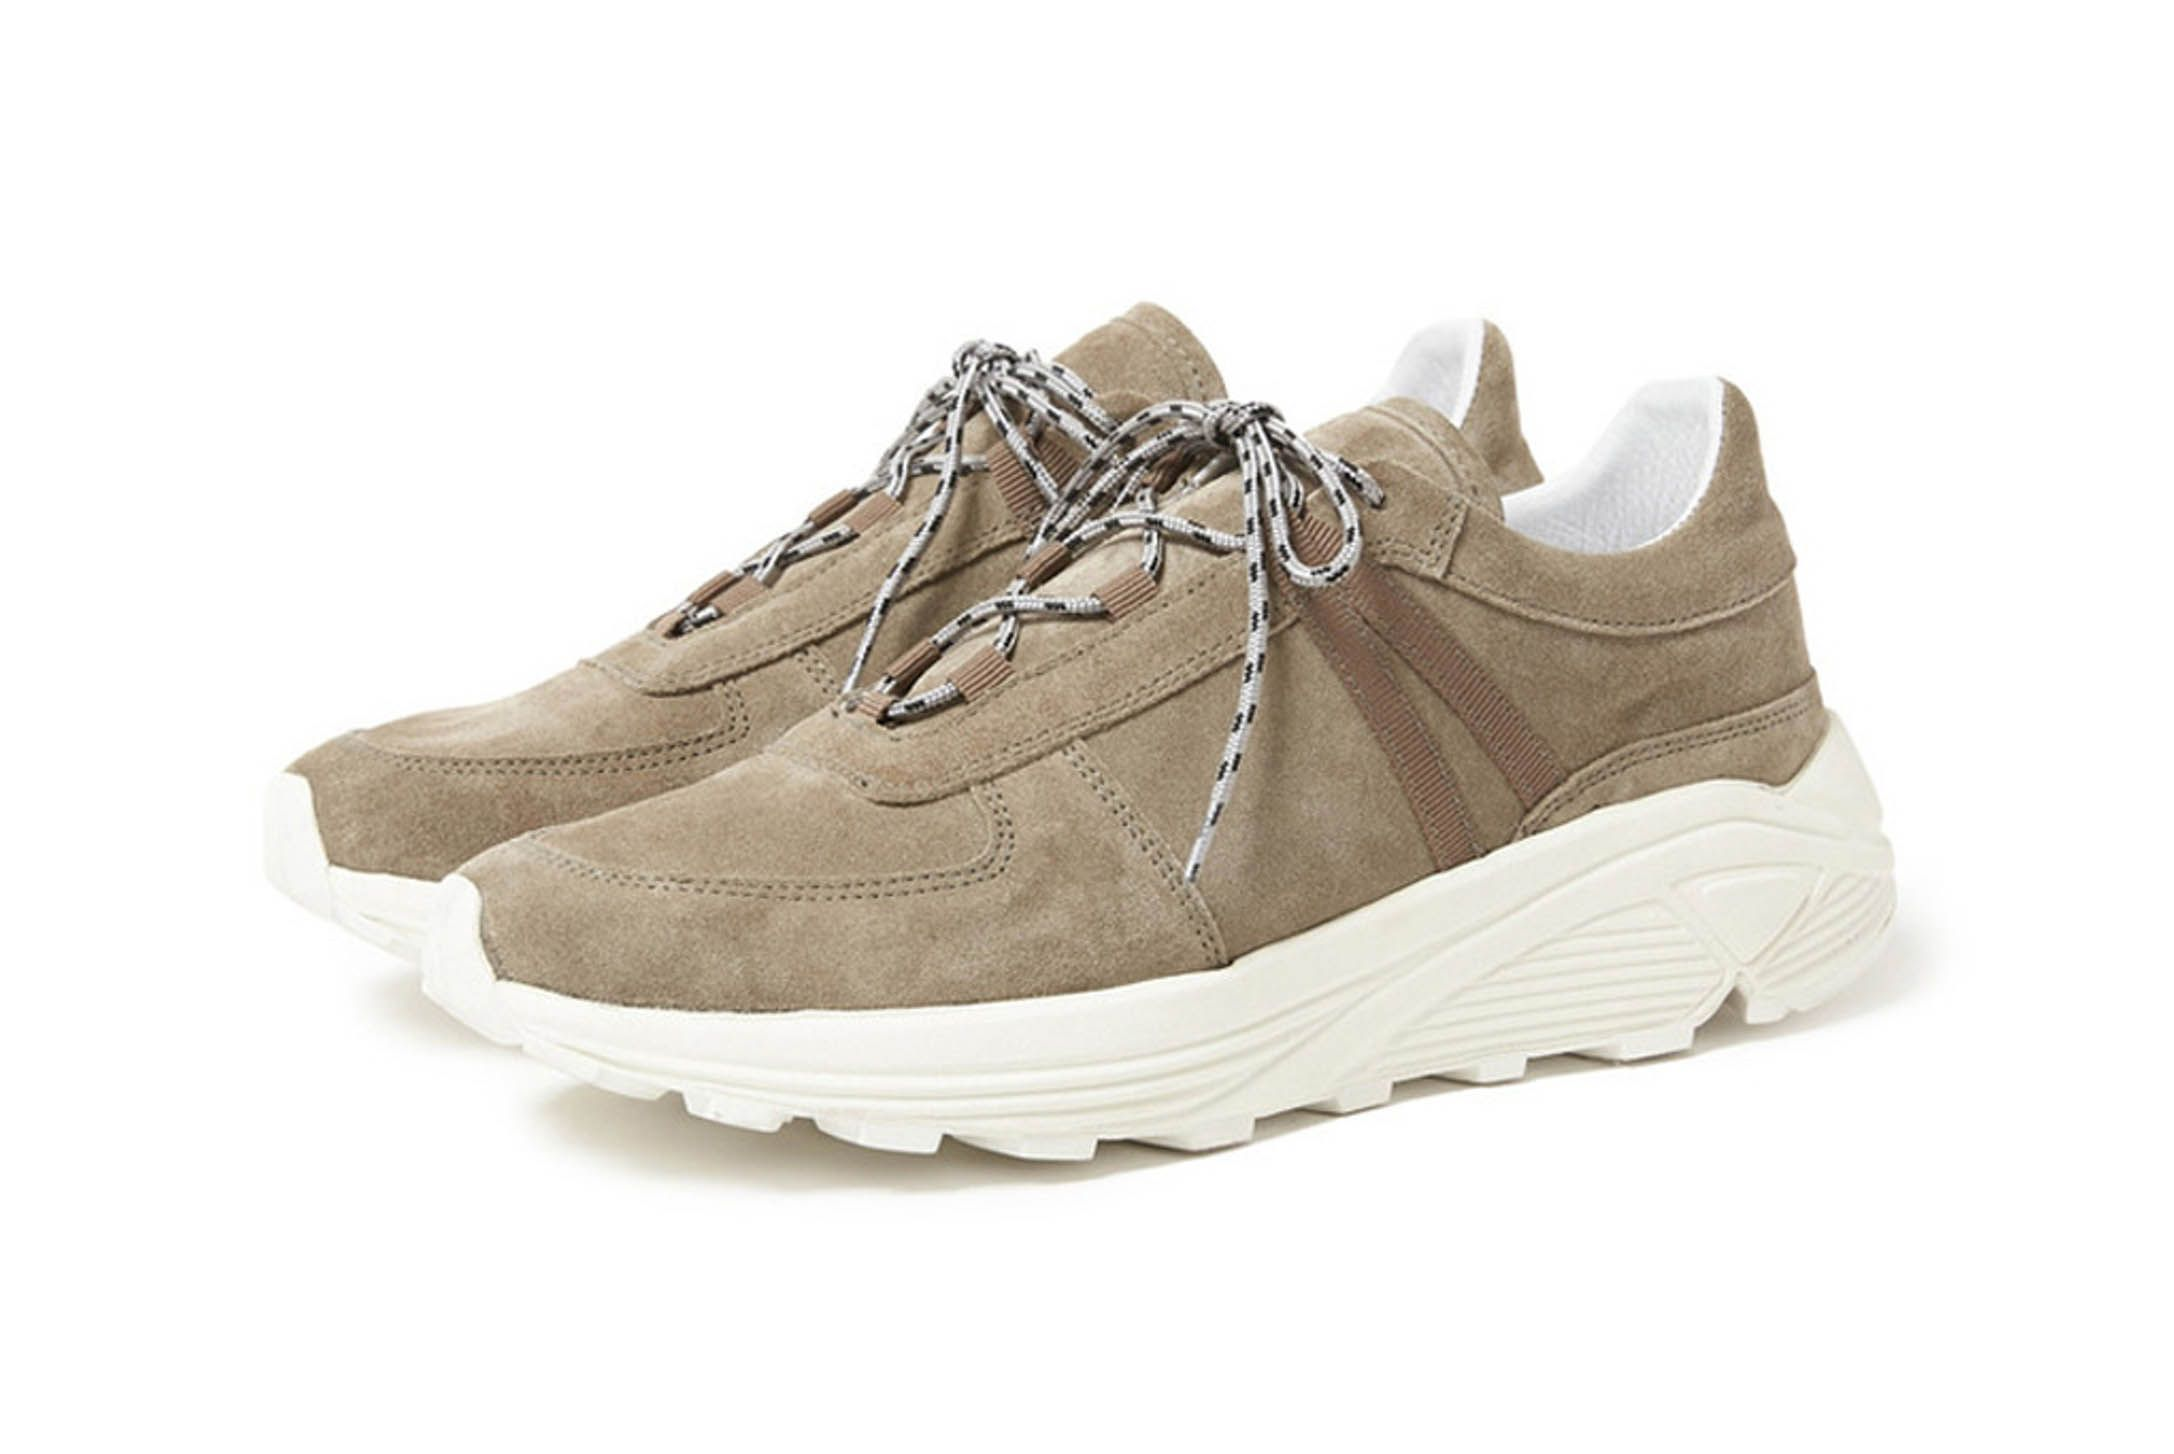 Nonnative Spring Summer 2018 Footwear Collection 3 Sneaker Freaker